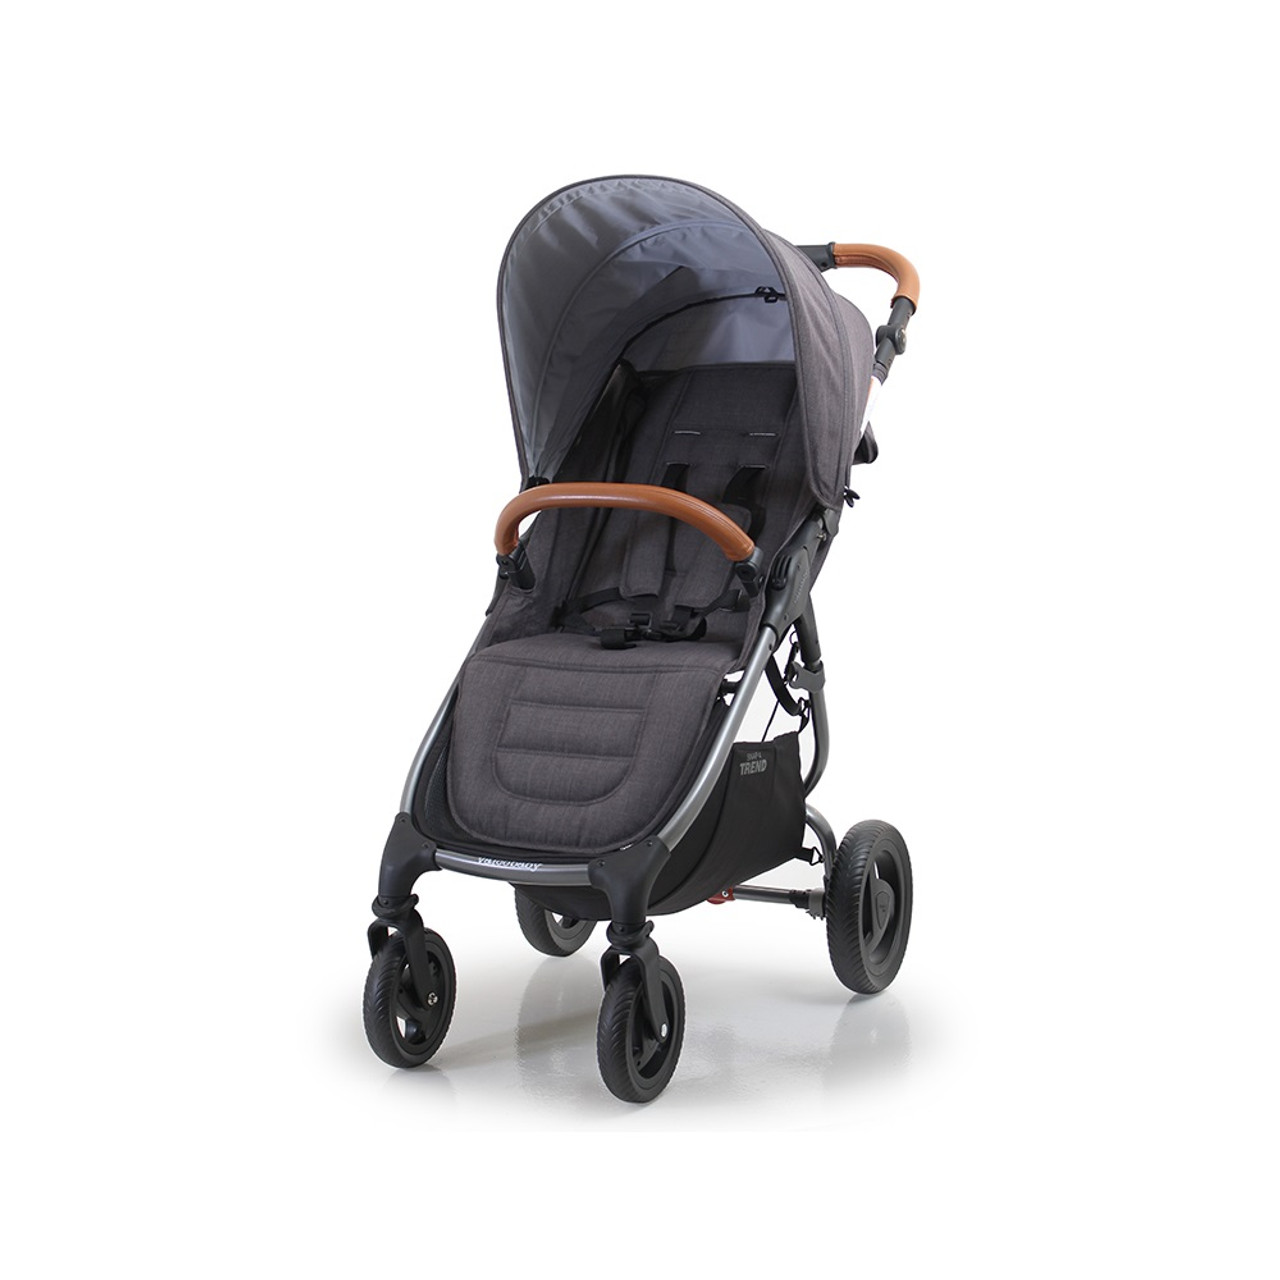 Valco Snap Trend Tailormade 4 Wheel Stroller - The perfect blend of comfort and design, this maneuverable stroller is a great fit for a family on the go.